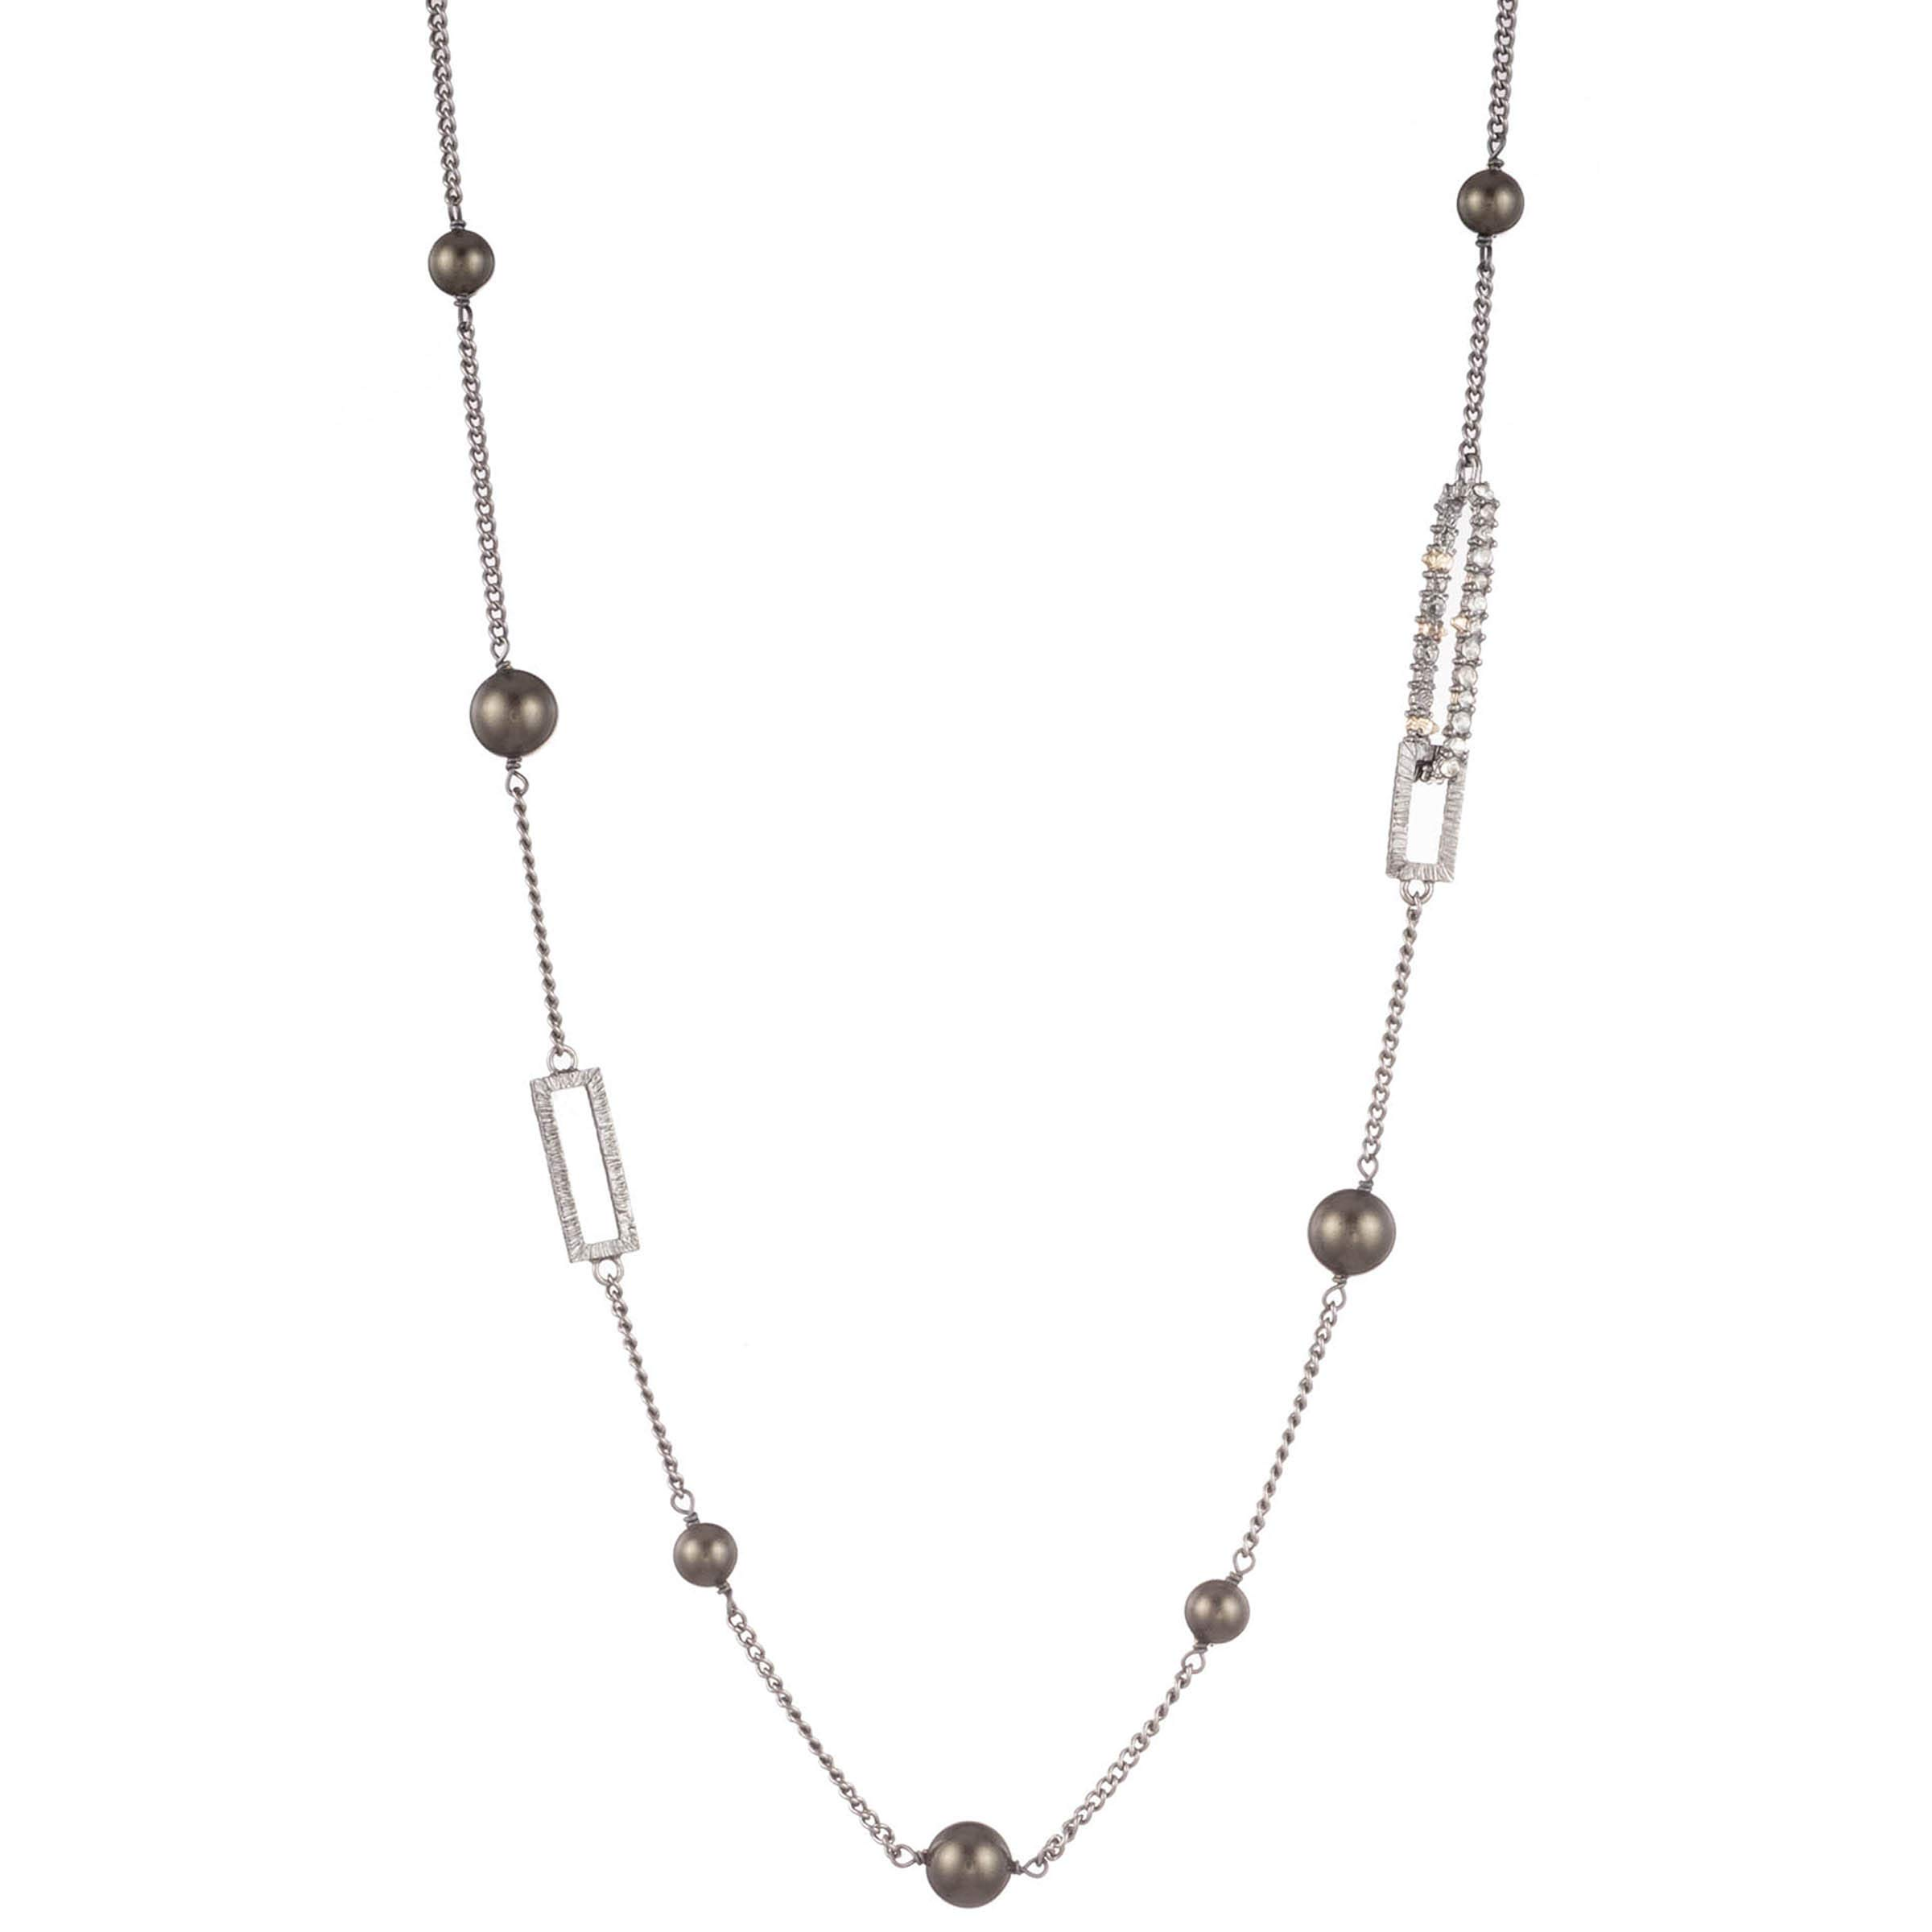 Alexis Bittar Women's Crystal Encrusted Link Necklace W/Pyrite Station by Alexis Bittar